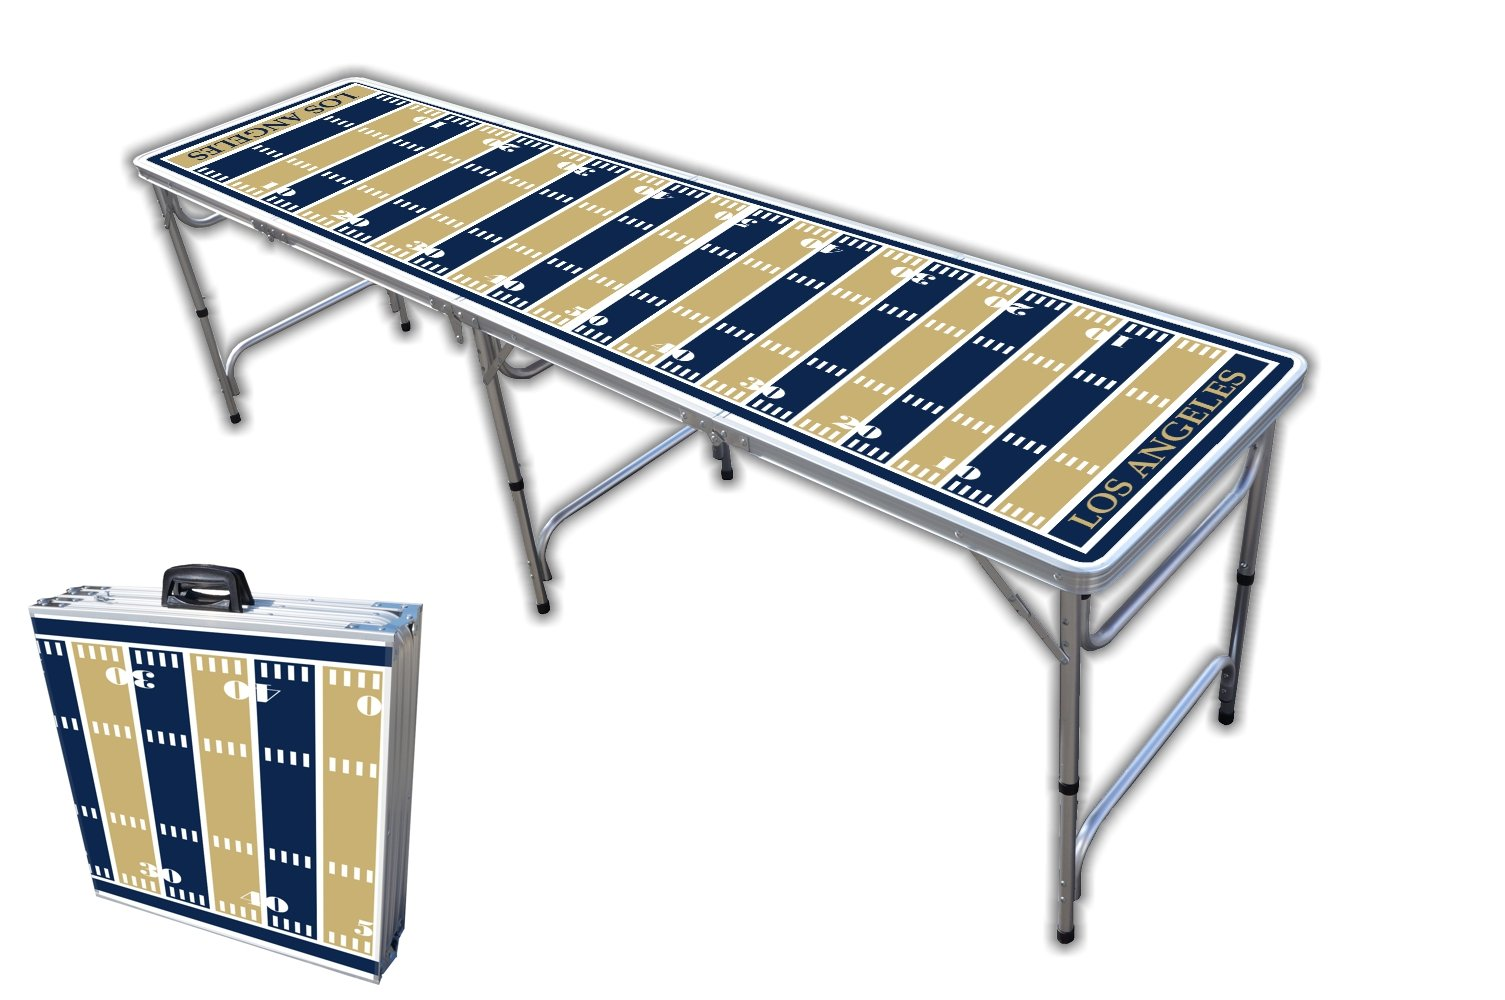 8-Foot Professional Beer Pong Table - Los Angeles Football Field Graphic by PartyPongTables.com